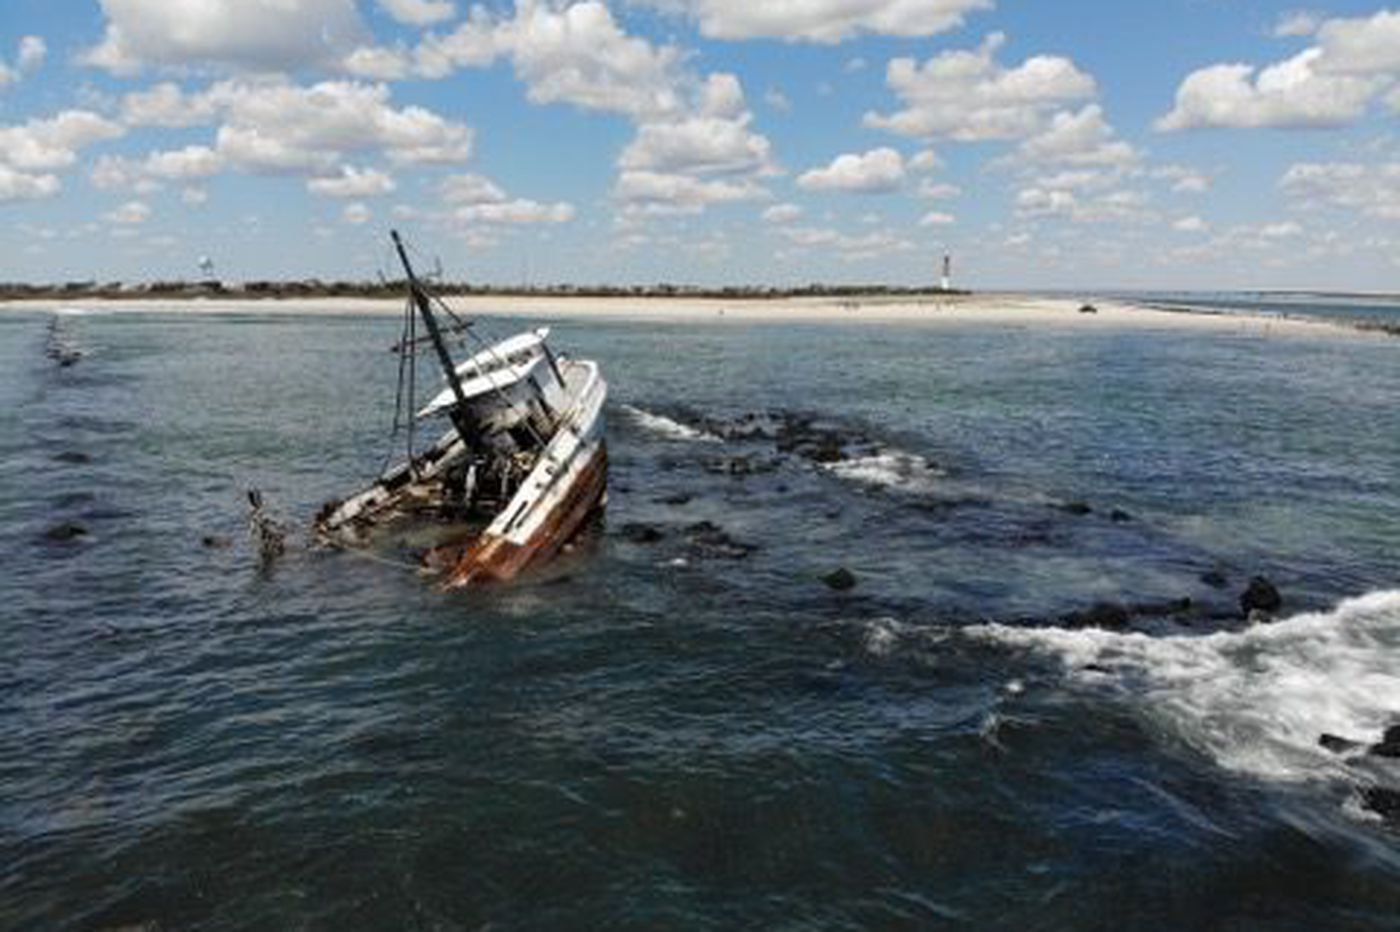 Two fishermen airlifted from vessel wrecked off Jersey Shore; boat may be a pollution threat